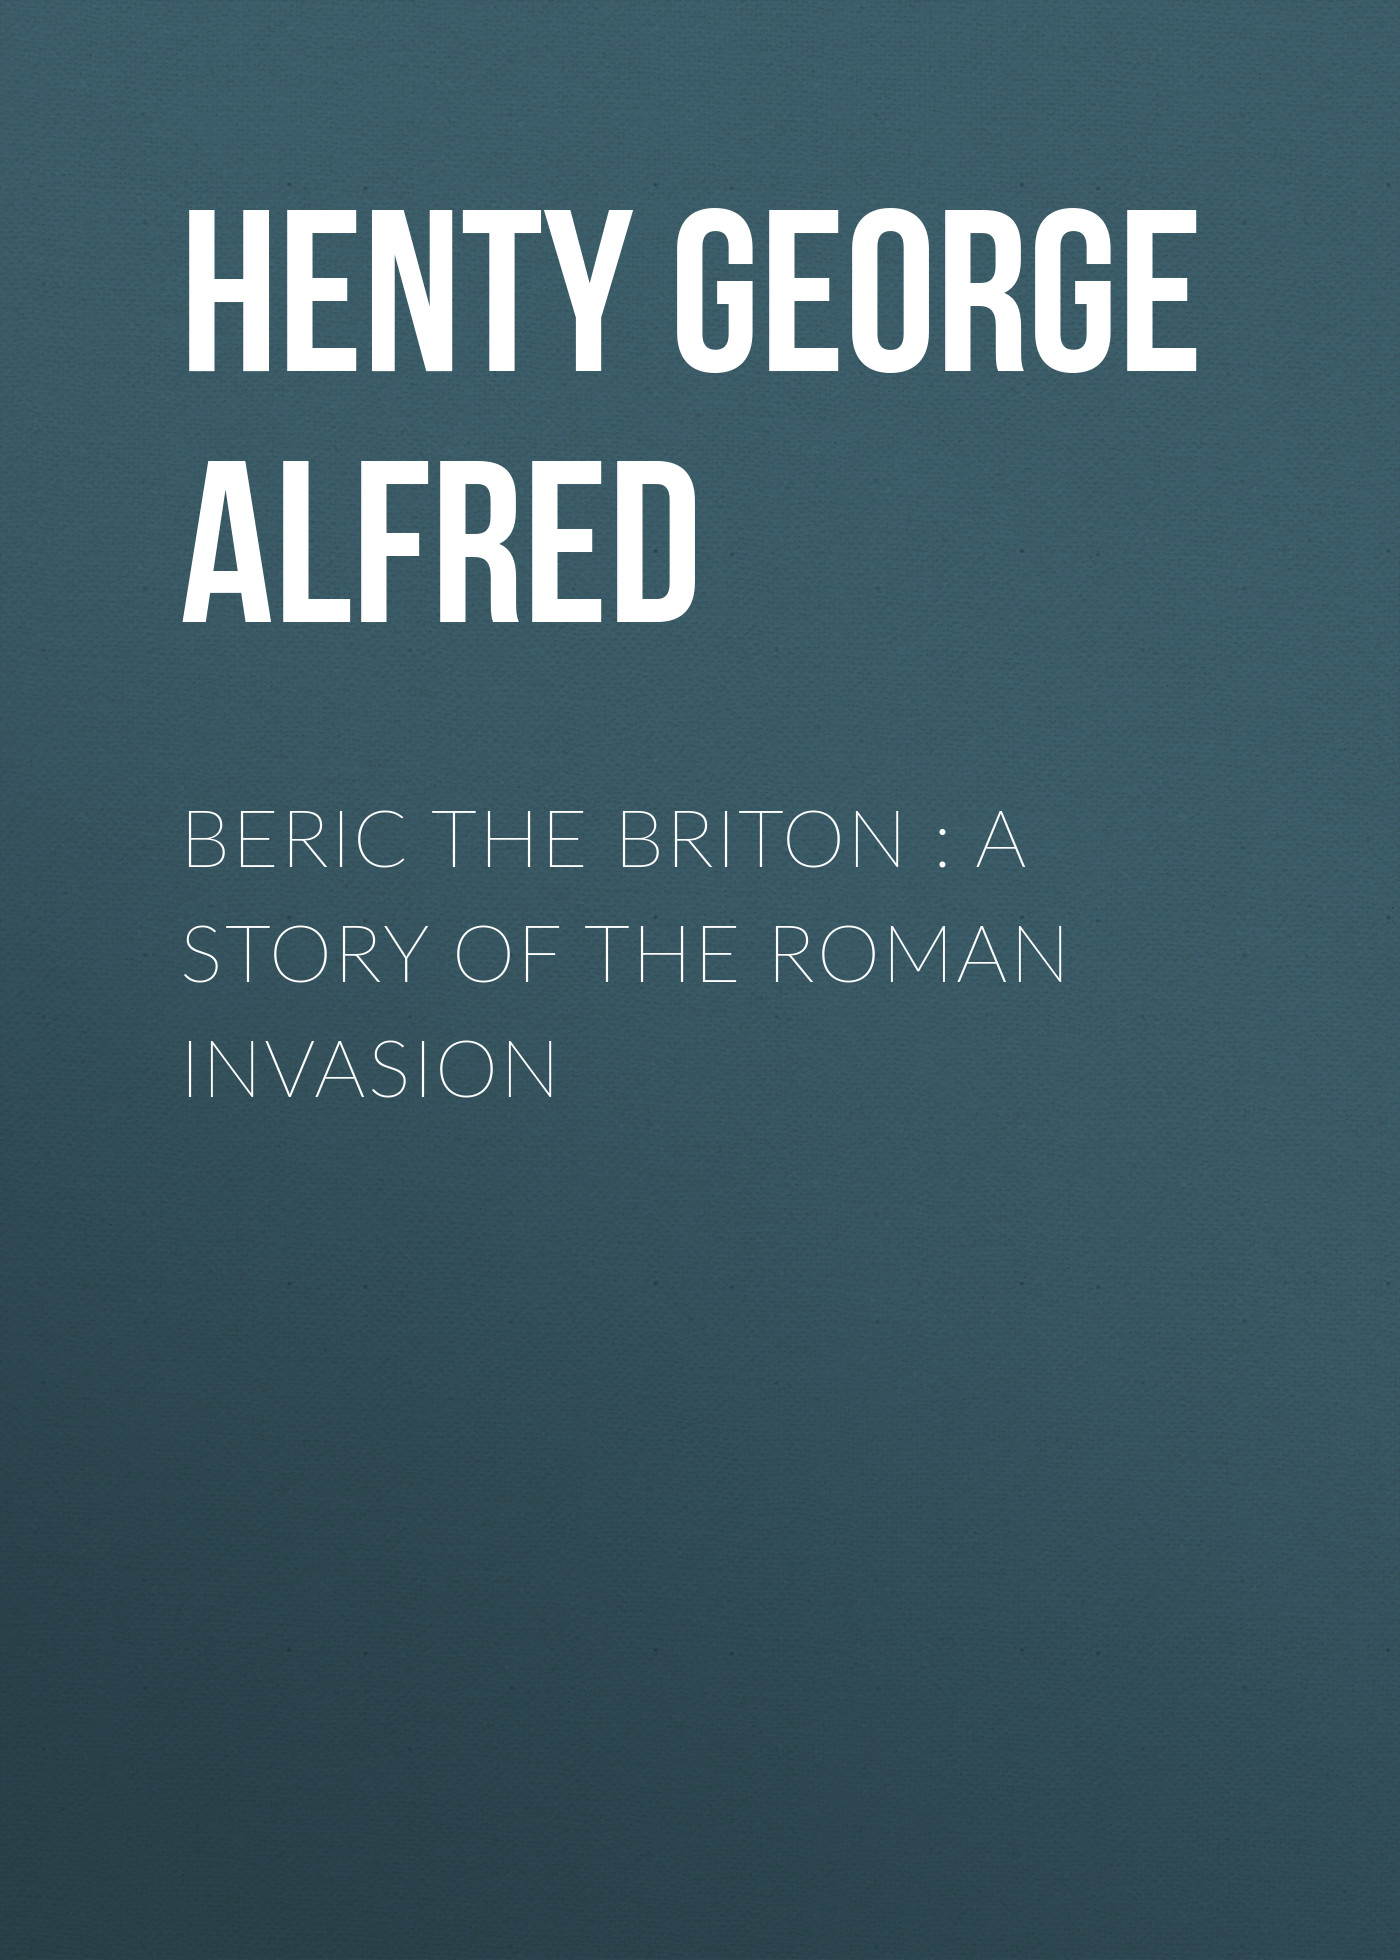 все цены на Henty George Alfred Beric the Briton : a Story of the Roman Invasion онлайн